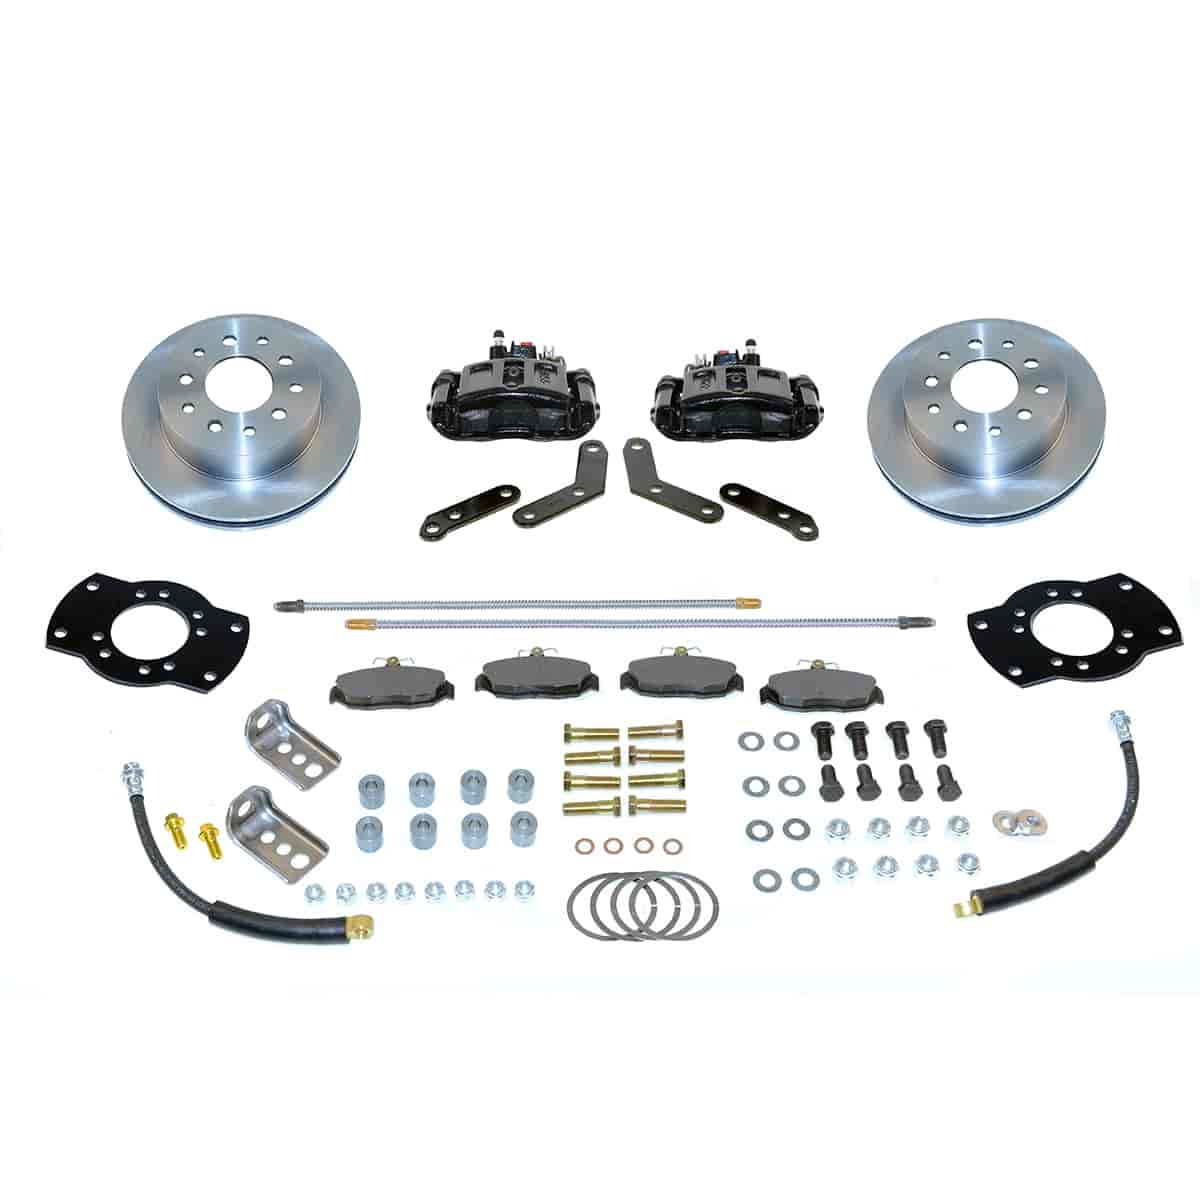 Stainless Steel Brakes A125BK - Stainless Steel Brakes Single Piston Rear Disc Brake Conversion Kit